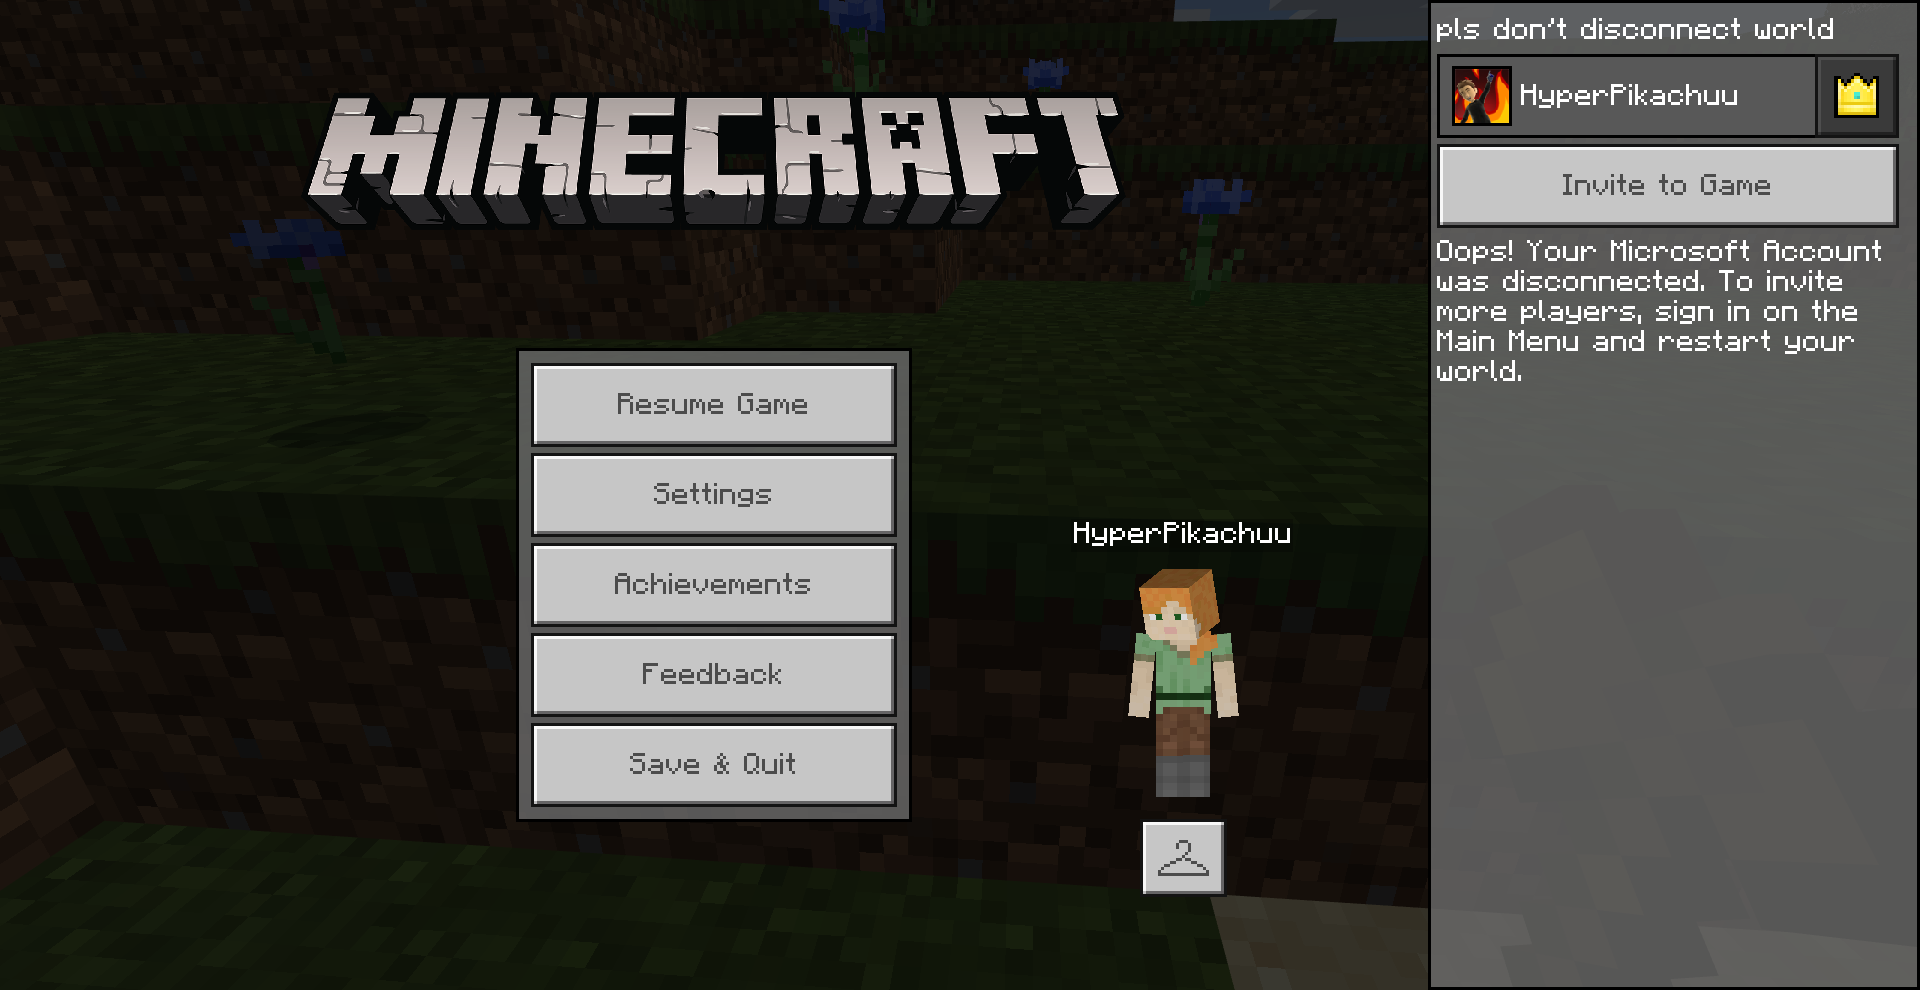 Minecraft windows 11 world keeps getting disconnected from my